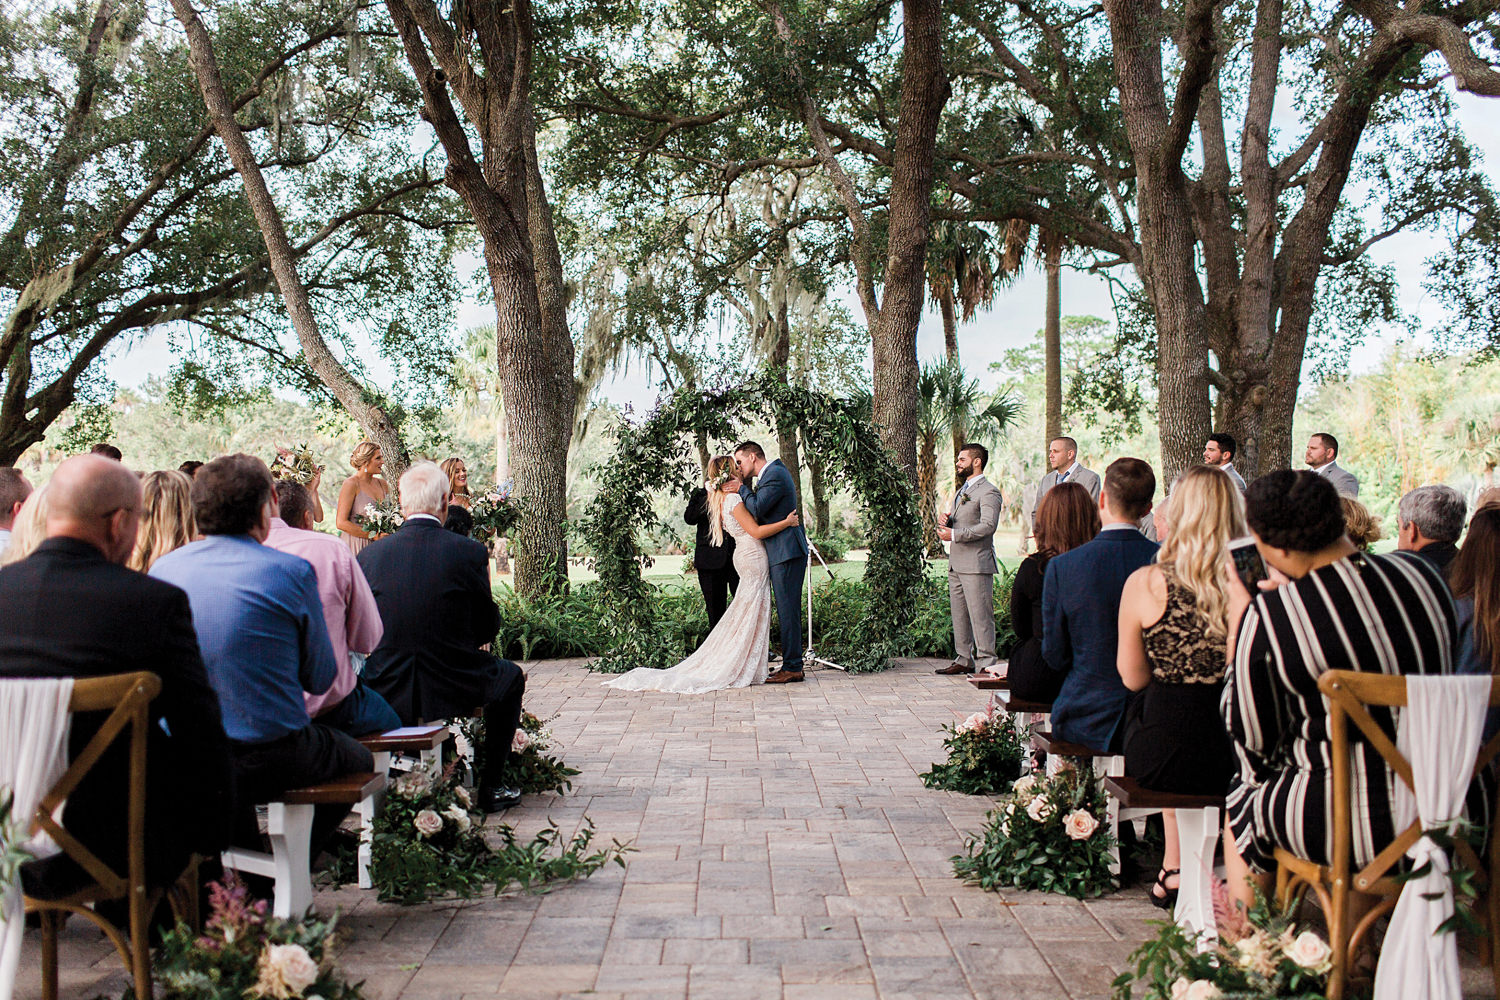 First kiss at an outdoor wedding with an infinity arch in the background.